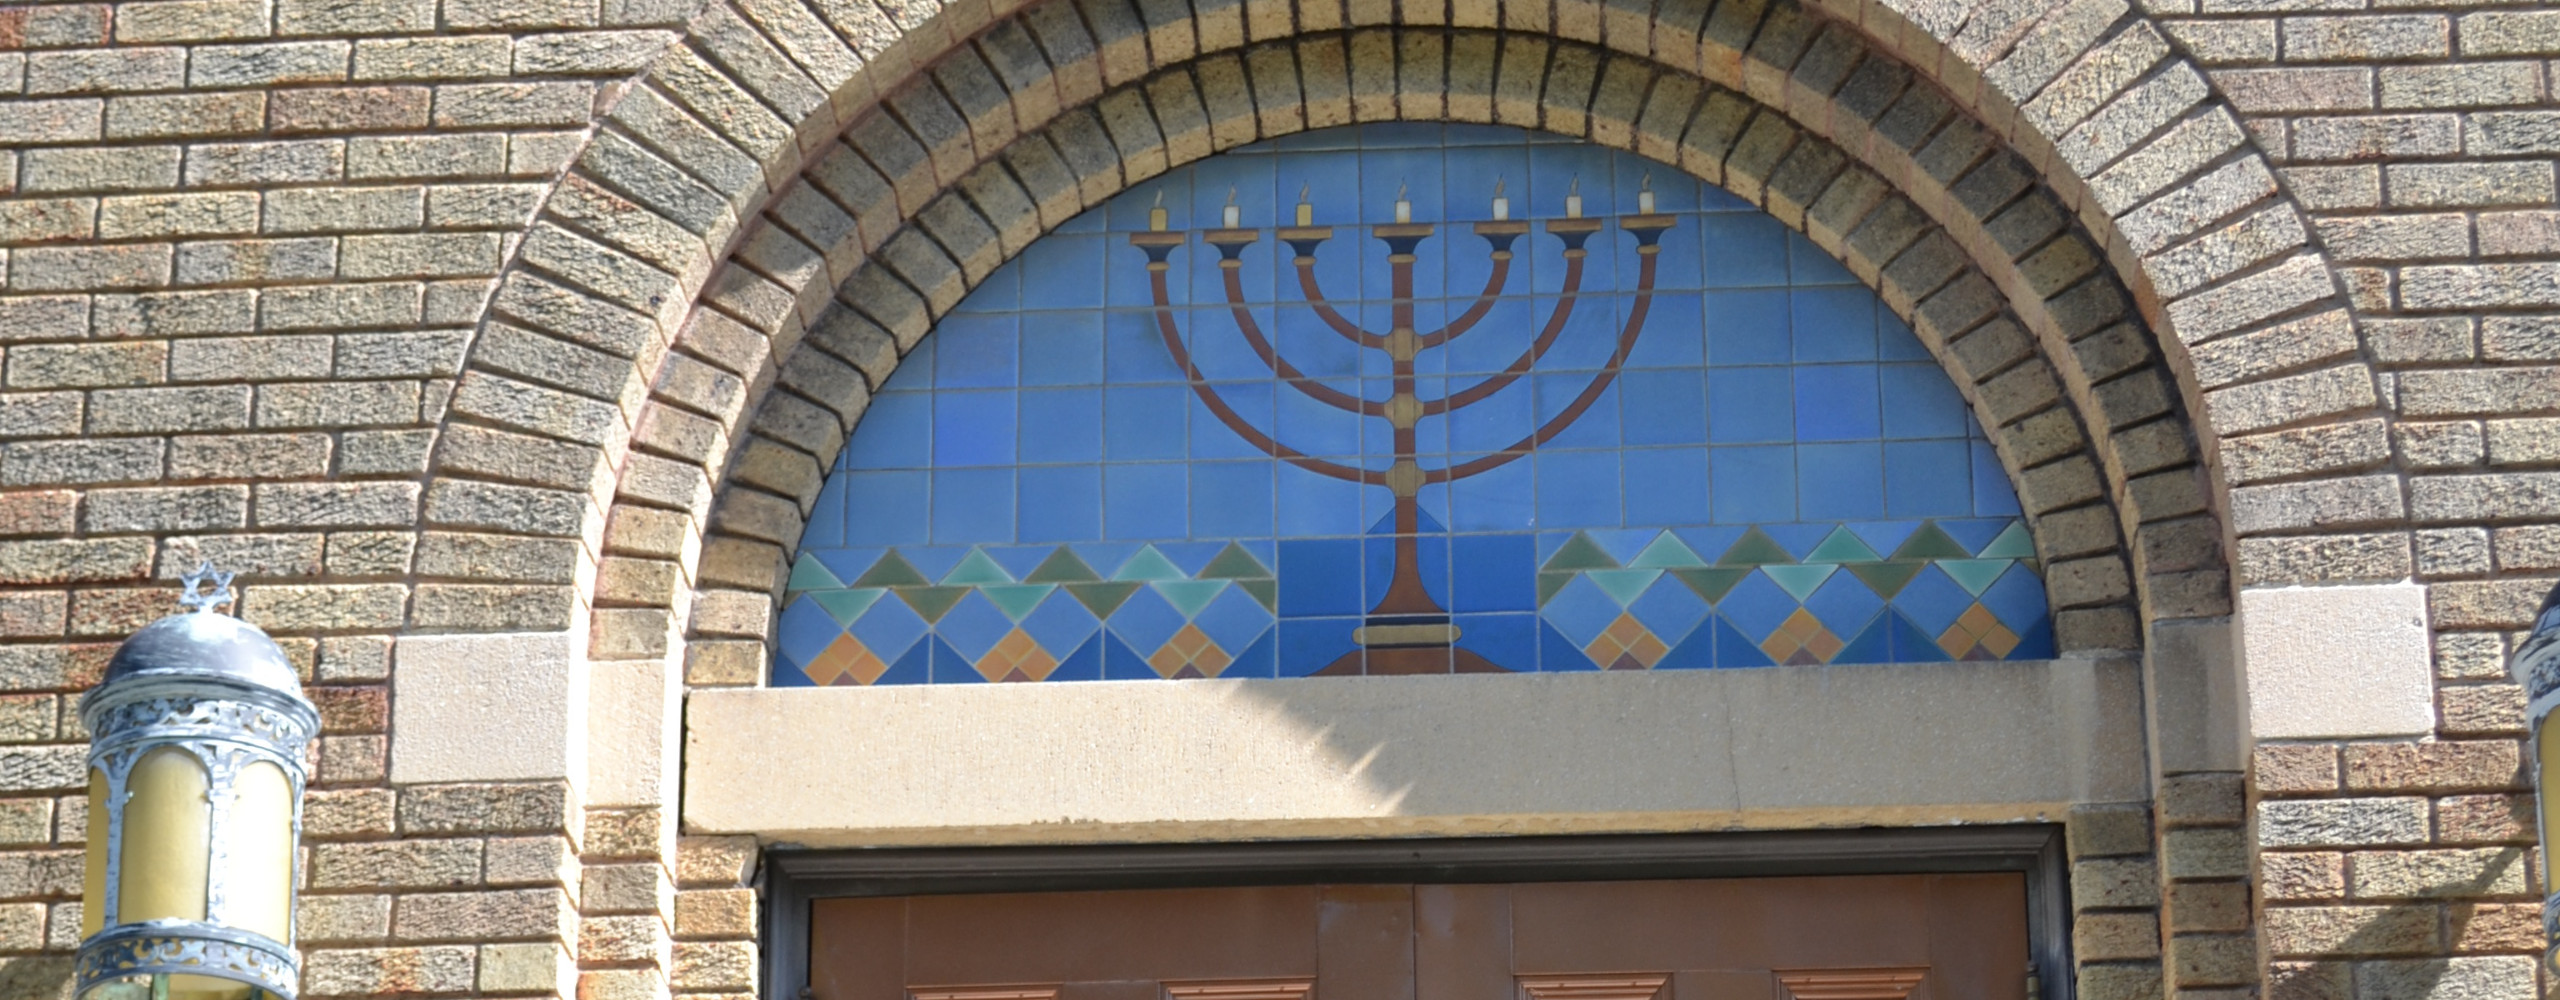 "<a href=""https://www.tbeithaca.org/chanukah-5781.html""